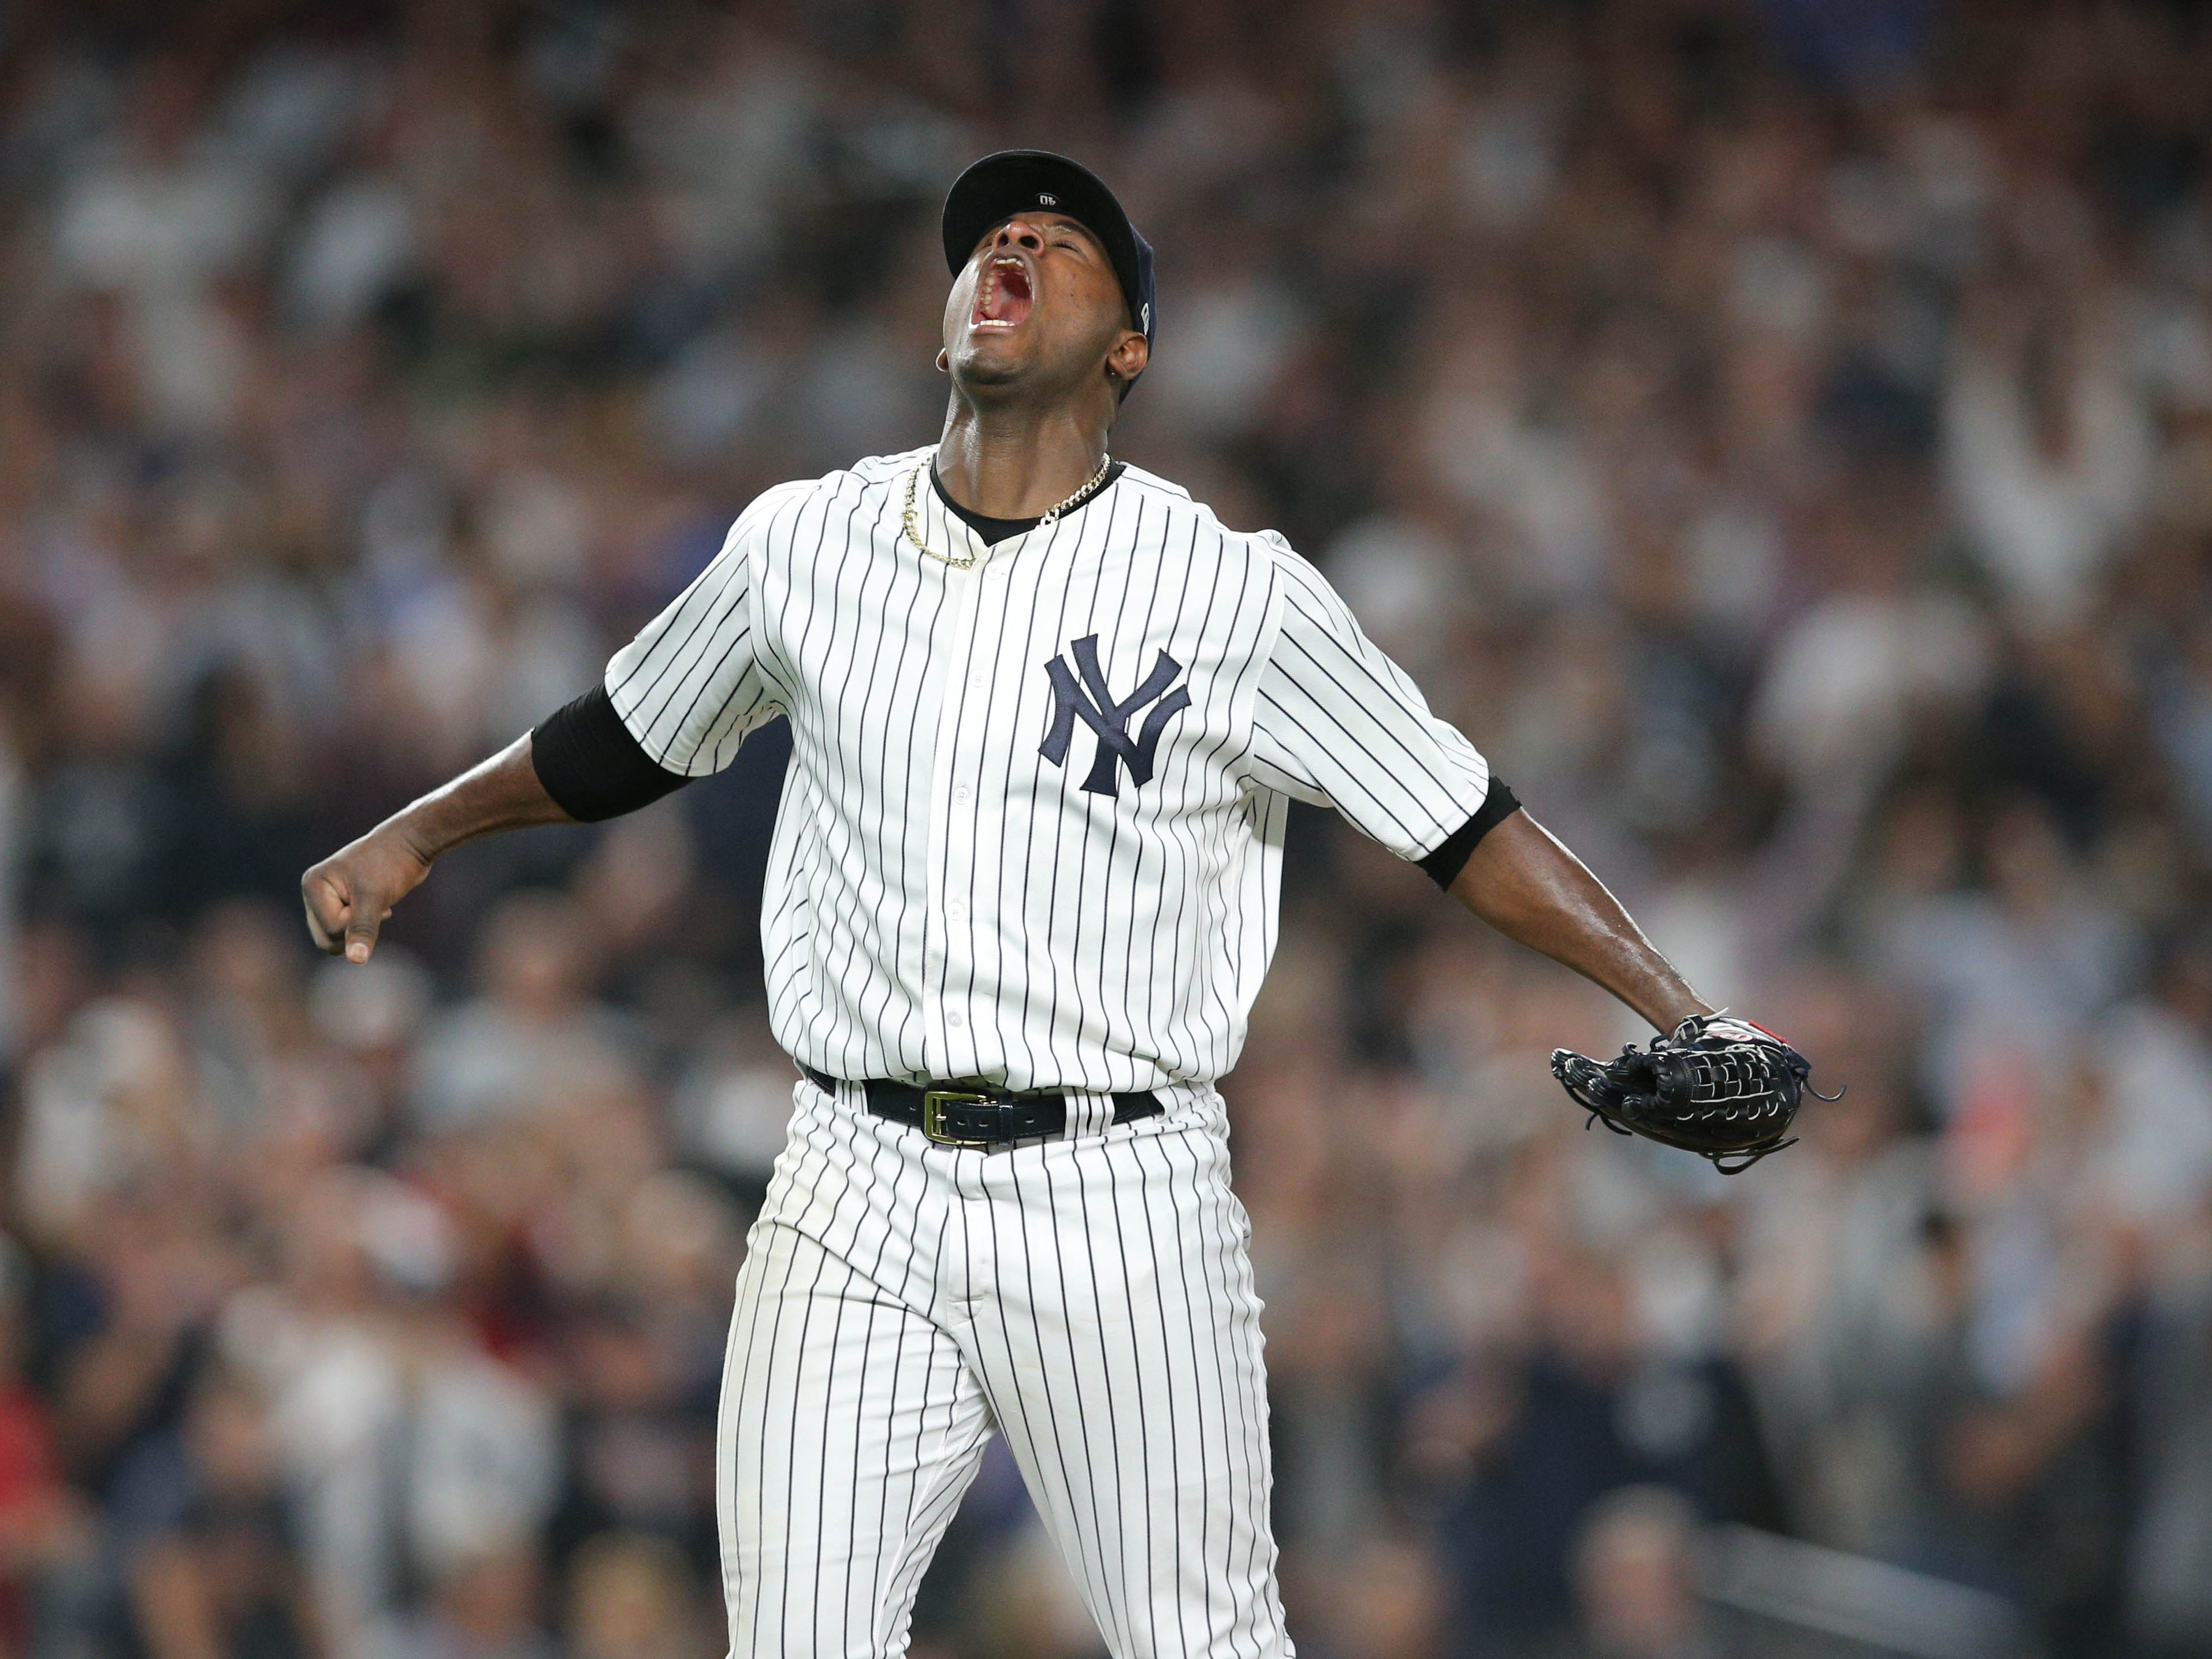 AL wild card: Yankees starting pitcher Luis Severino is pumped after striking out the Marcus Semien for the final out in the fourth inning with bases loaded.